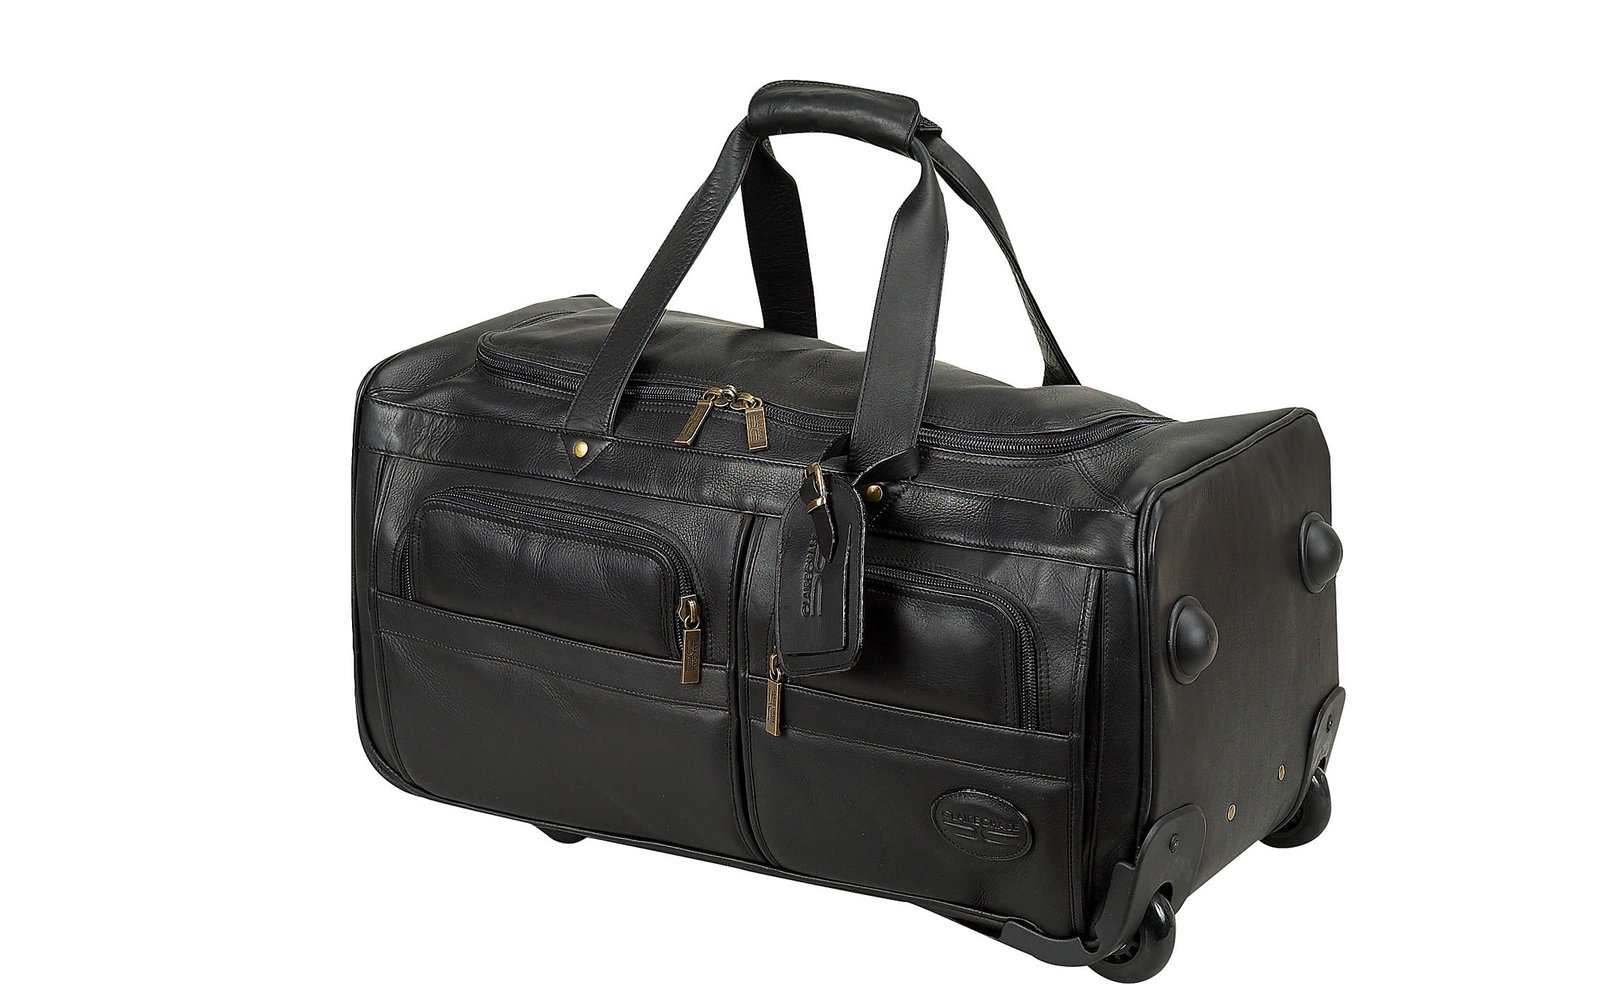 84a923141077 Mens Carry On Bags With Wheels- Fenix Toulouse Handball